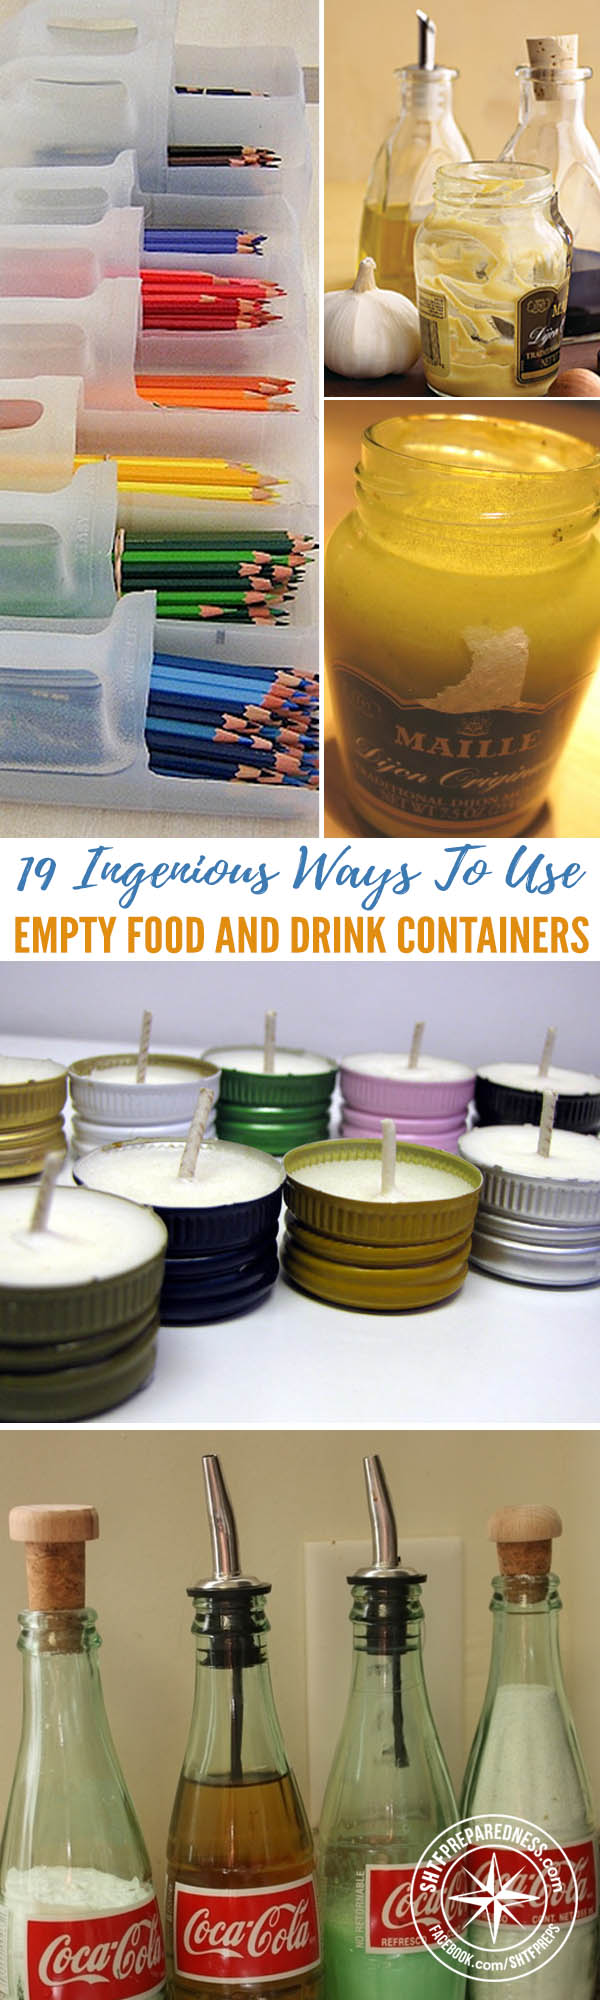 19 Ingenious Ways To Use Empty Food And Drink Containers : drink storage containers  - Aquiesqueretaro.Com